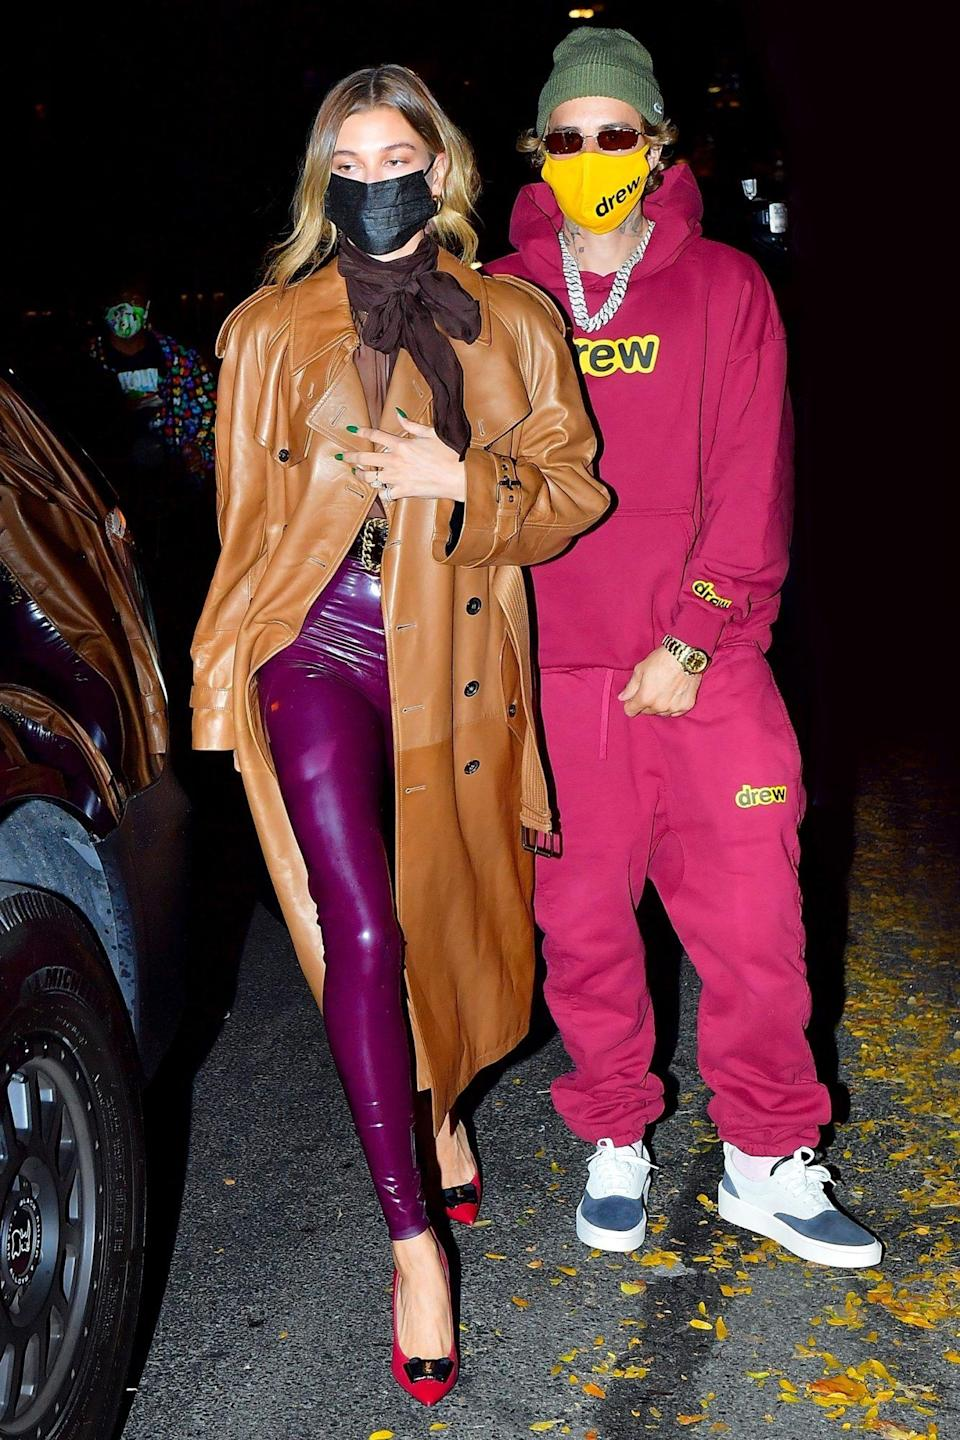 <p>Justin Bieber and Hailey Baldwin head to dinner in colorful outfits in N.Y.C. on Thursday. </p>